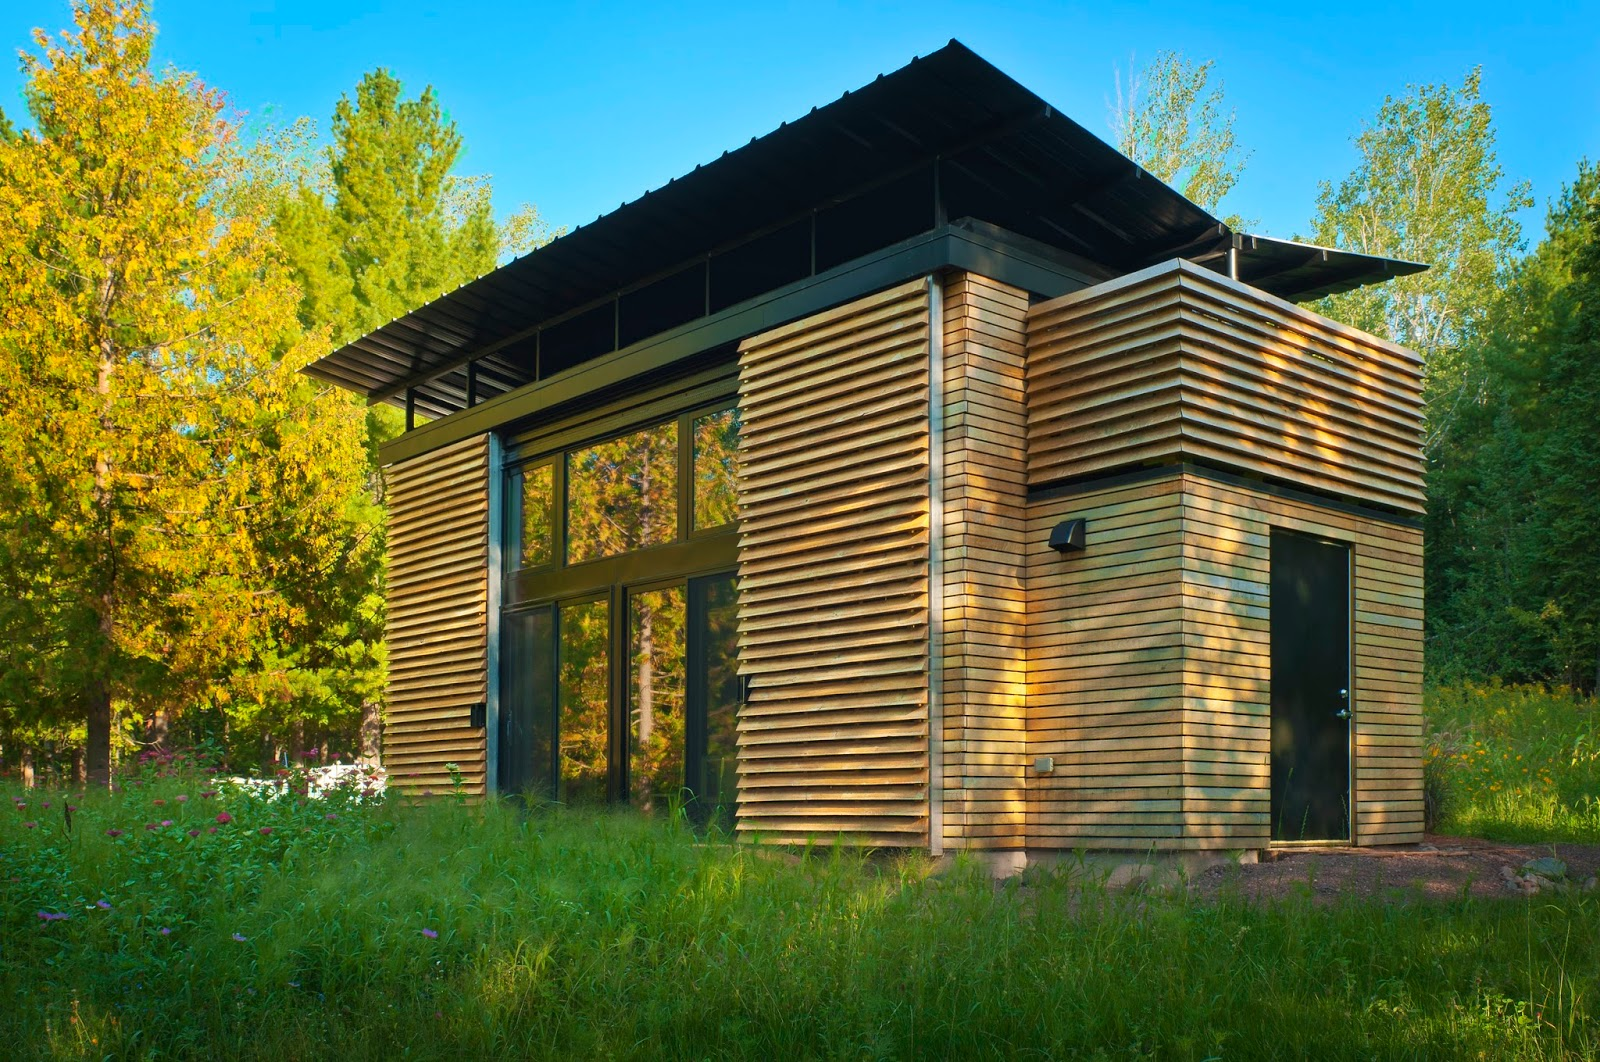 TINY HOUSE TOWN: The E.D.G.E. Prefab Tiny Home